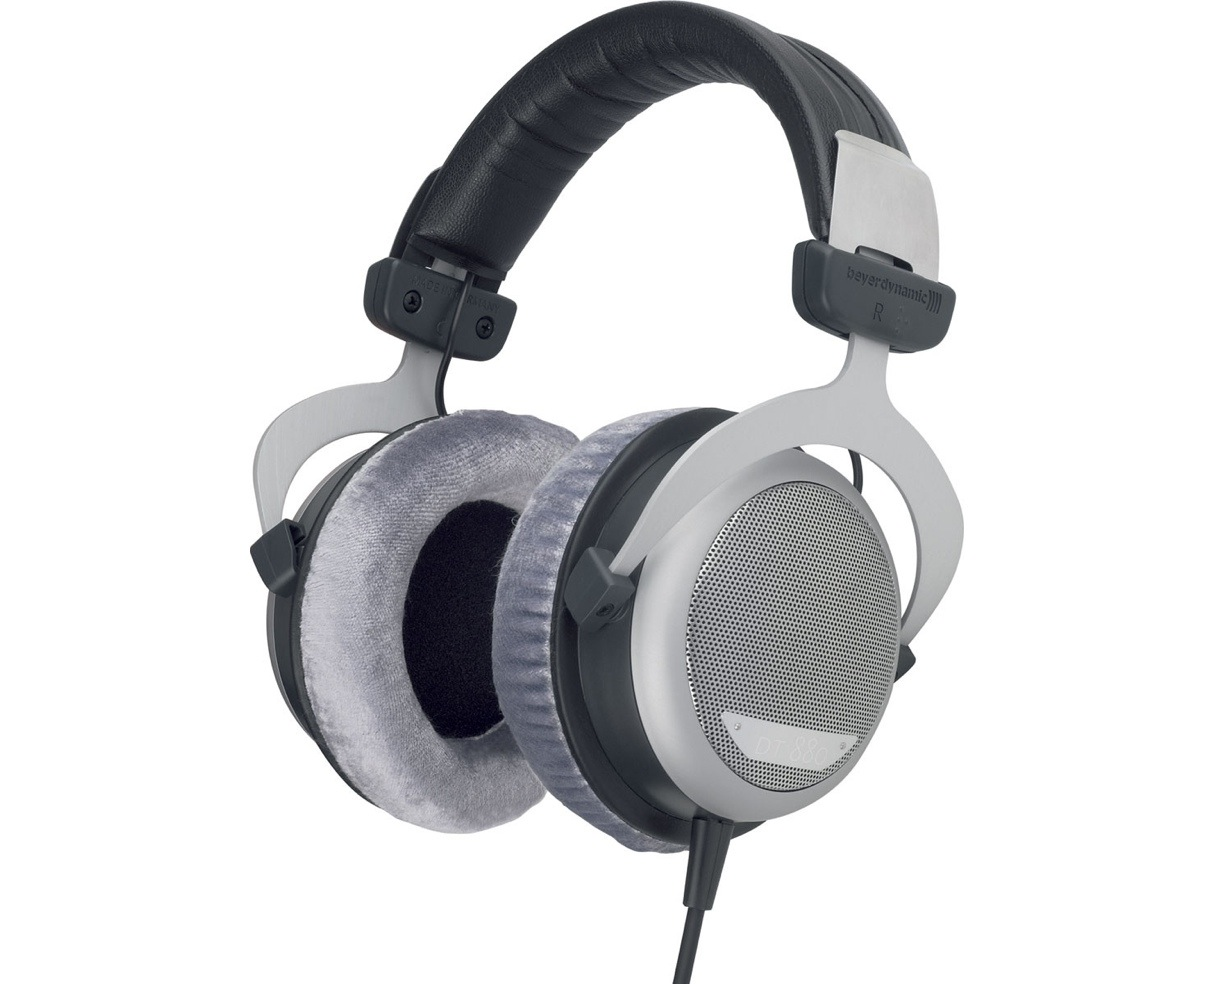 Beyerdynamic DT-880 EDITION Headphones